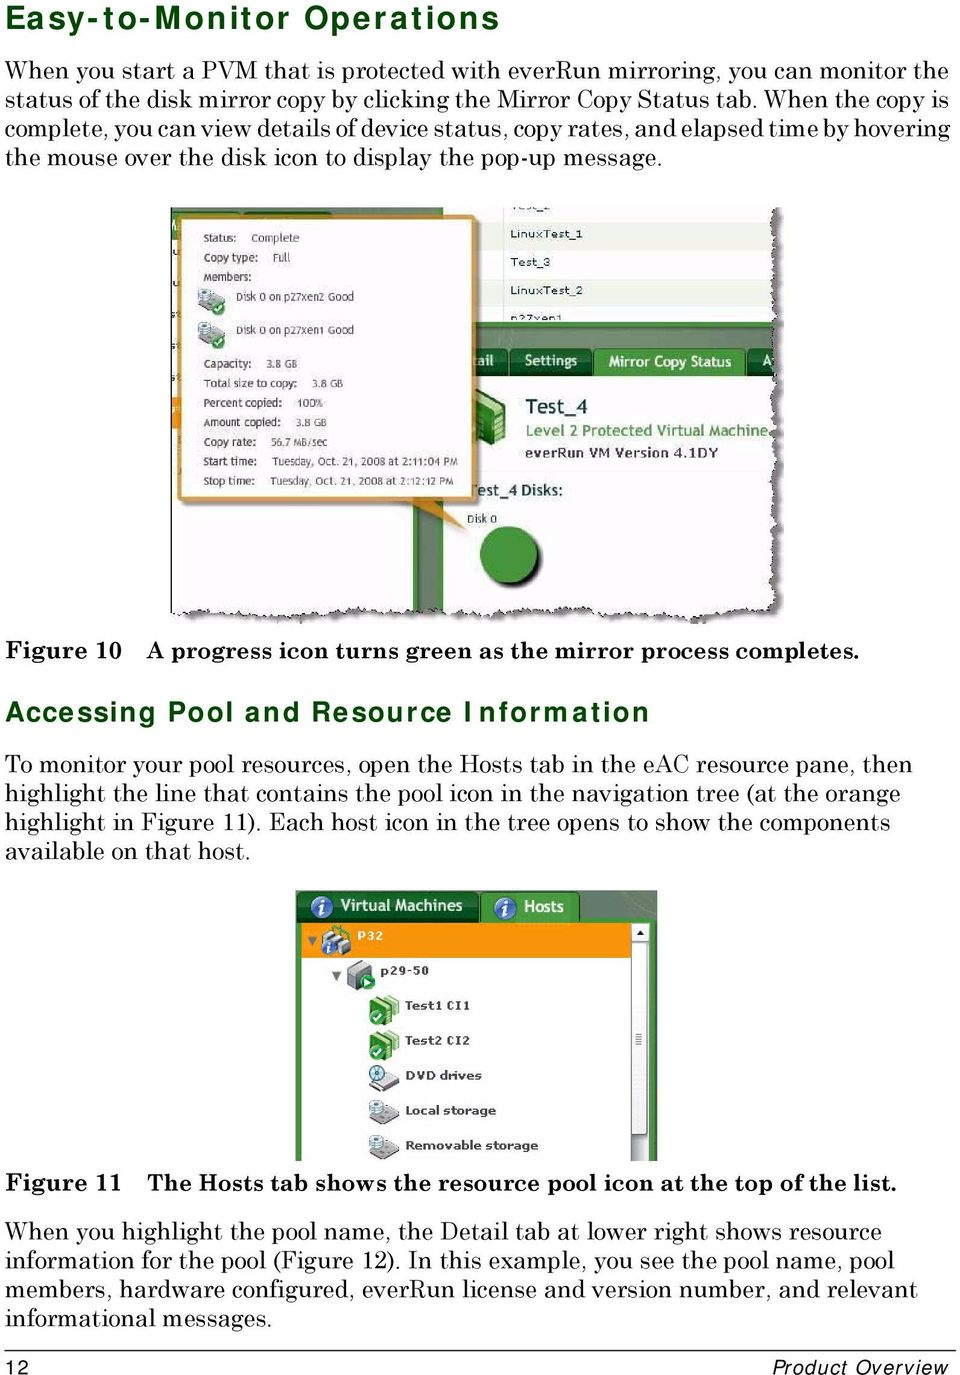 Figure 10 A progress icon turns green as the mirror process completes.